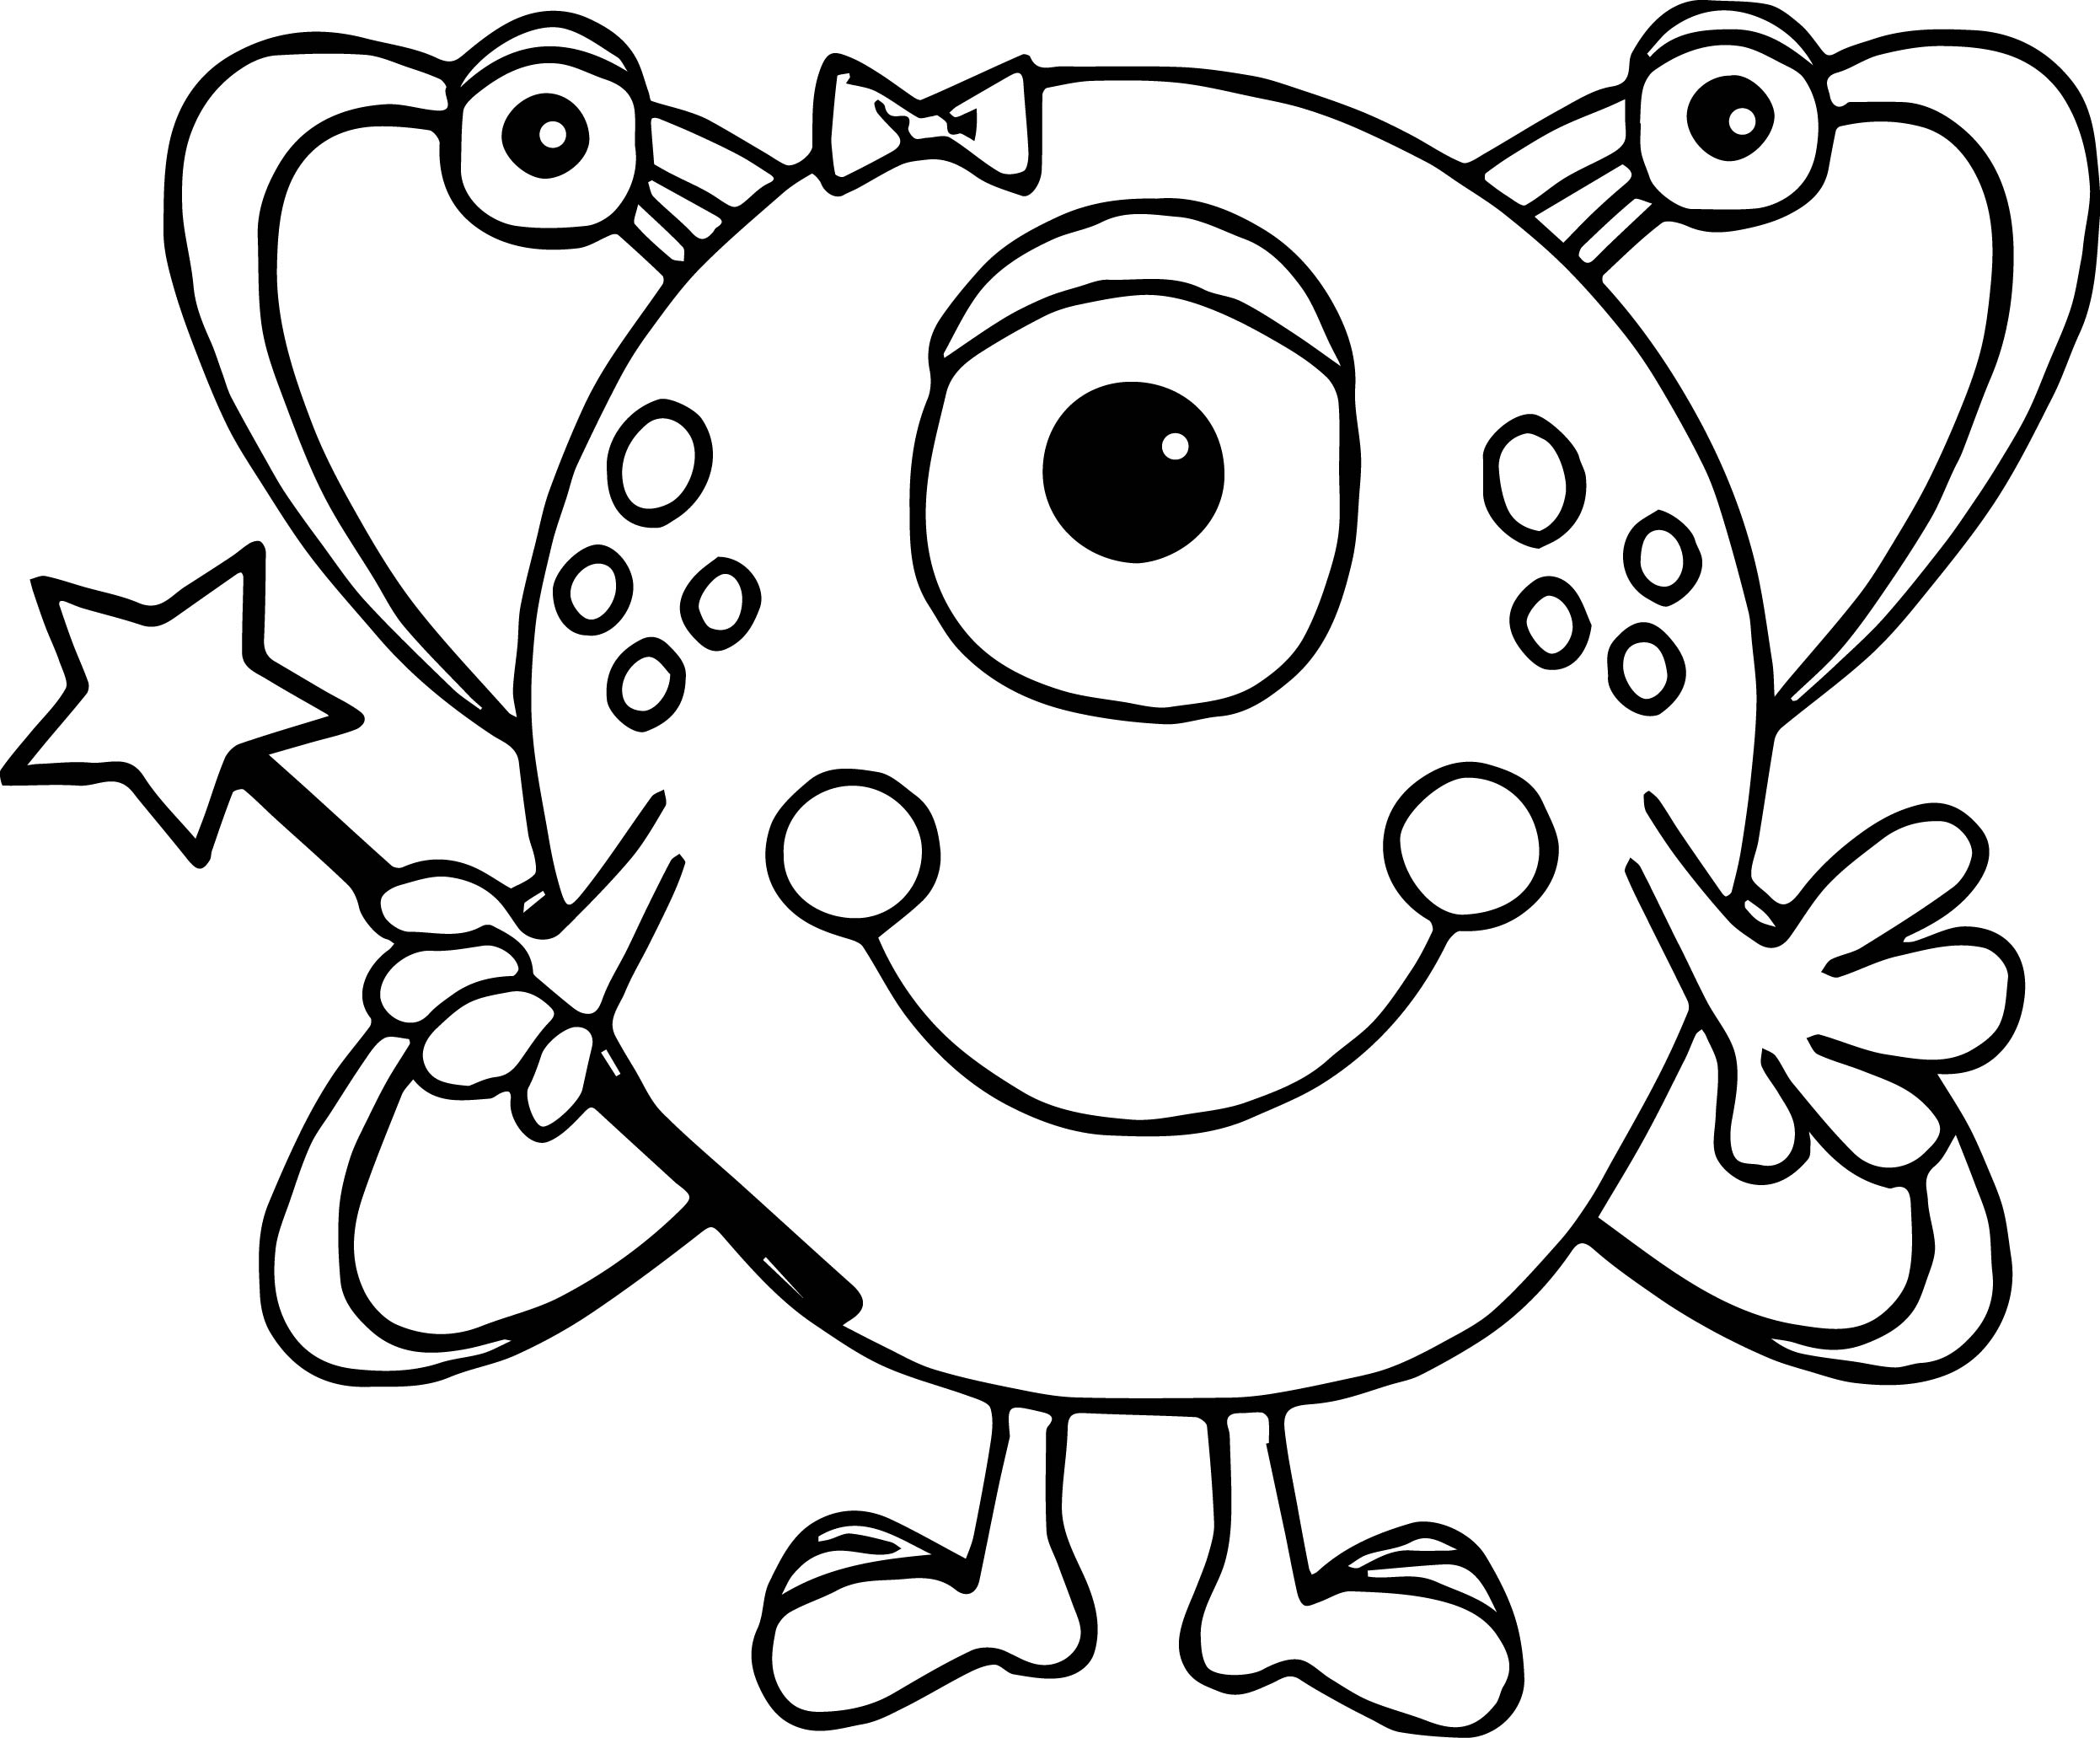 Cute Alien Coloring Pages Coloring Pages